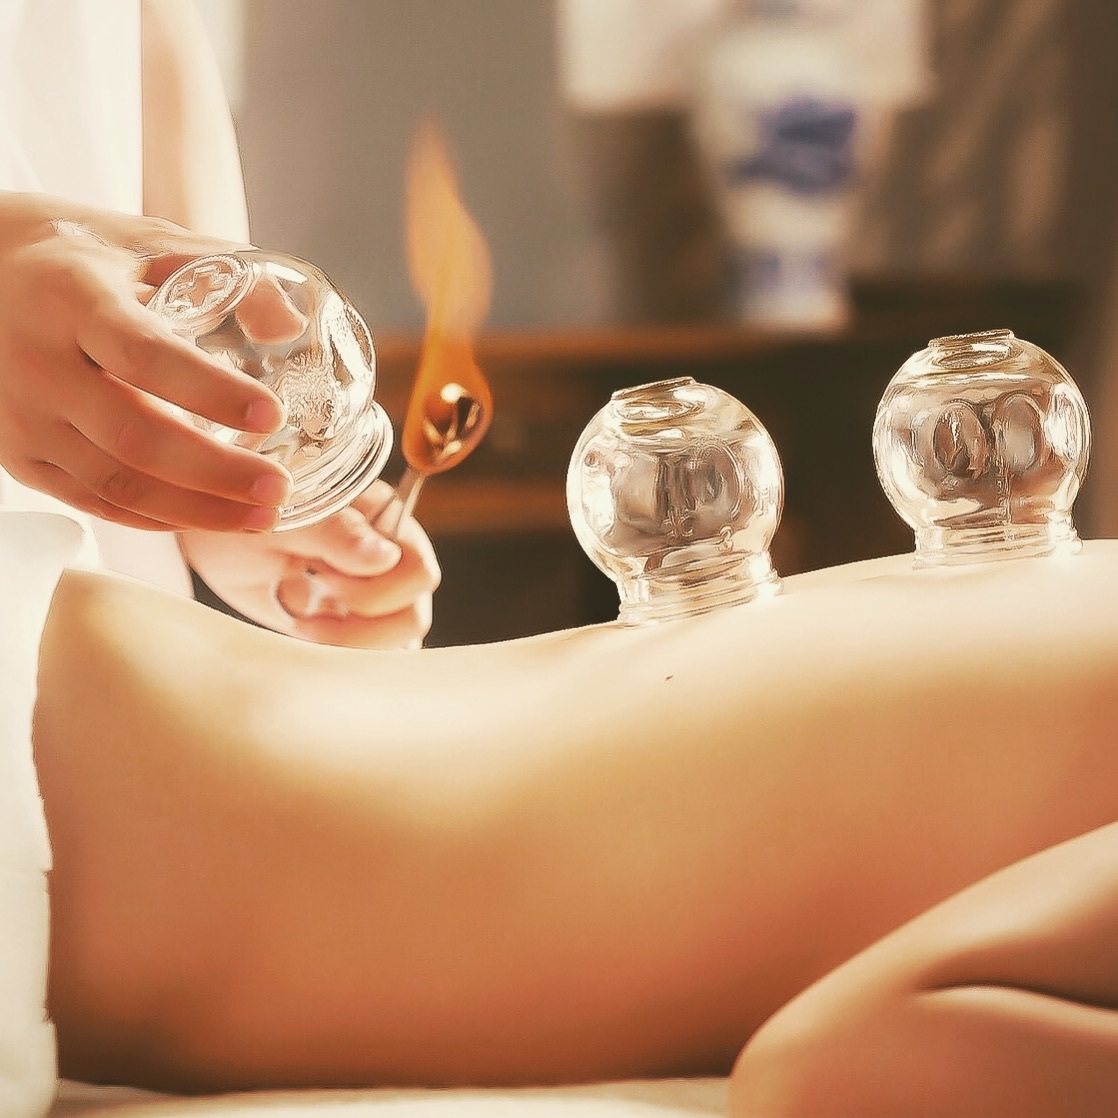 Cupping is an incredible healing technique that has been around for thousands of years. -